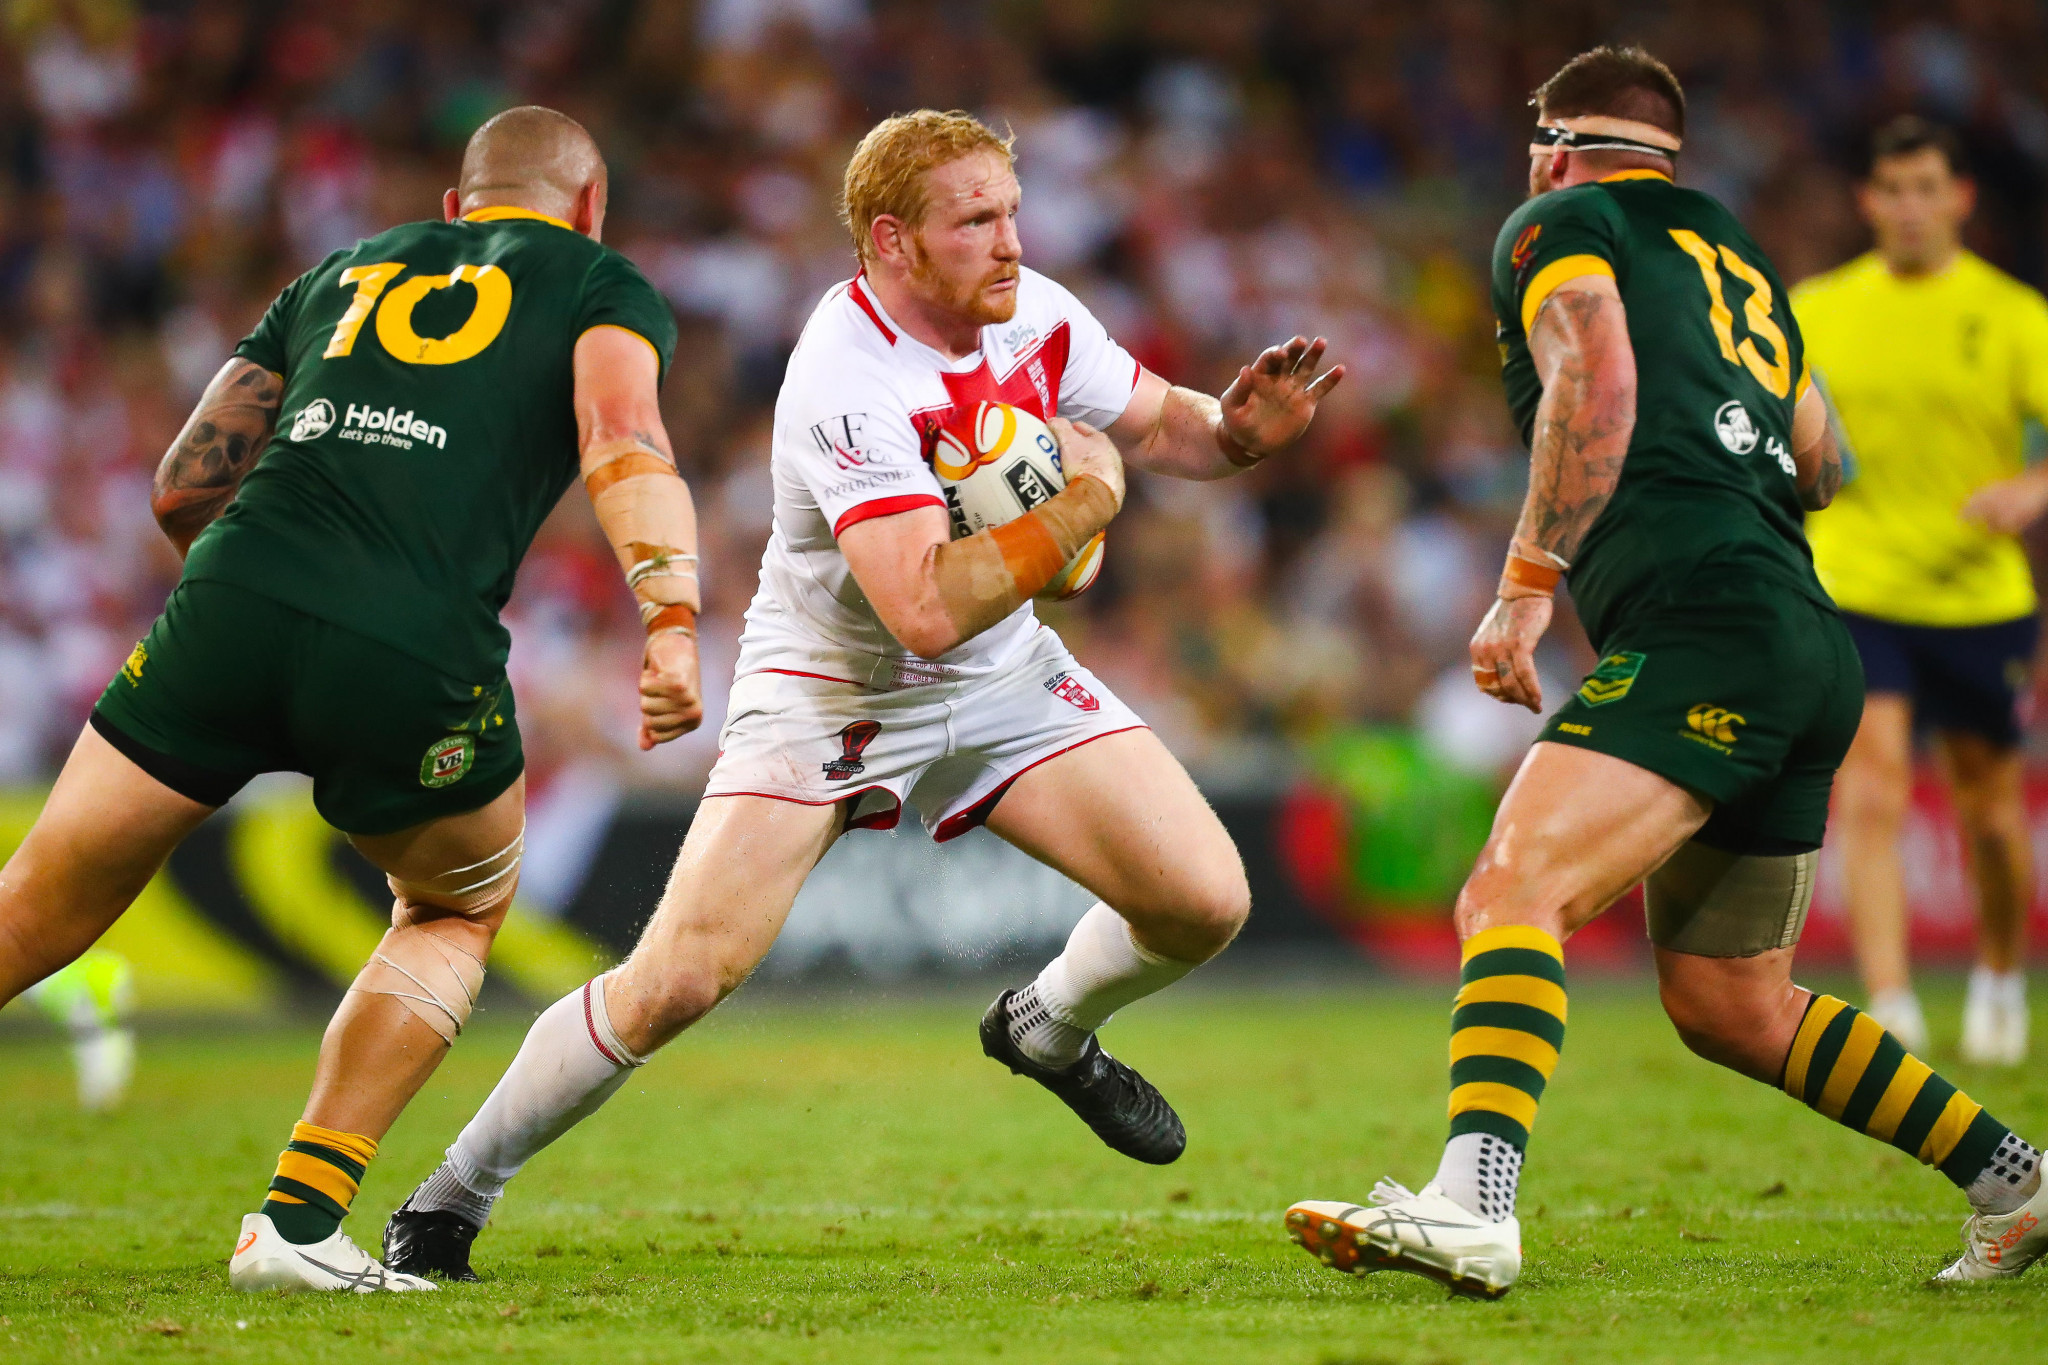 Rugby League International Federation updated on six new committees and working groups